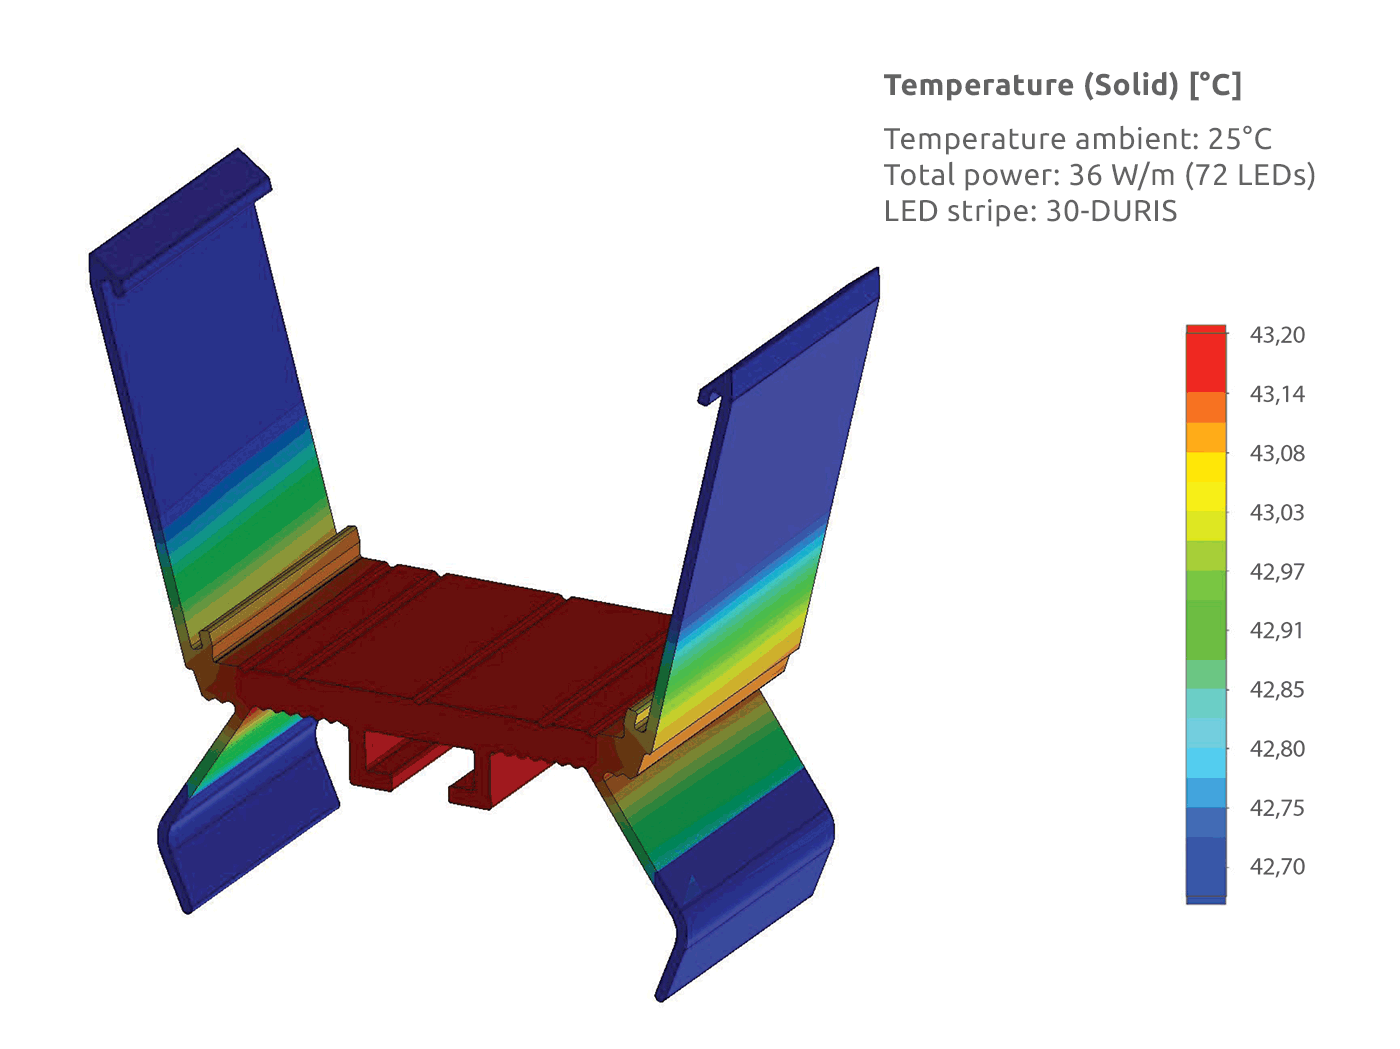 RPL55 Thermal analyses